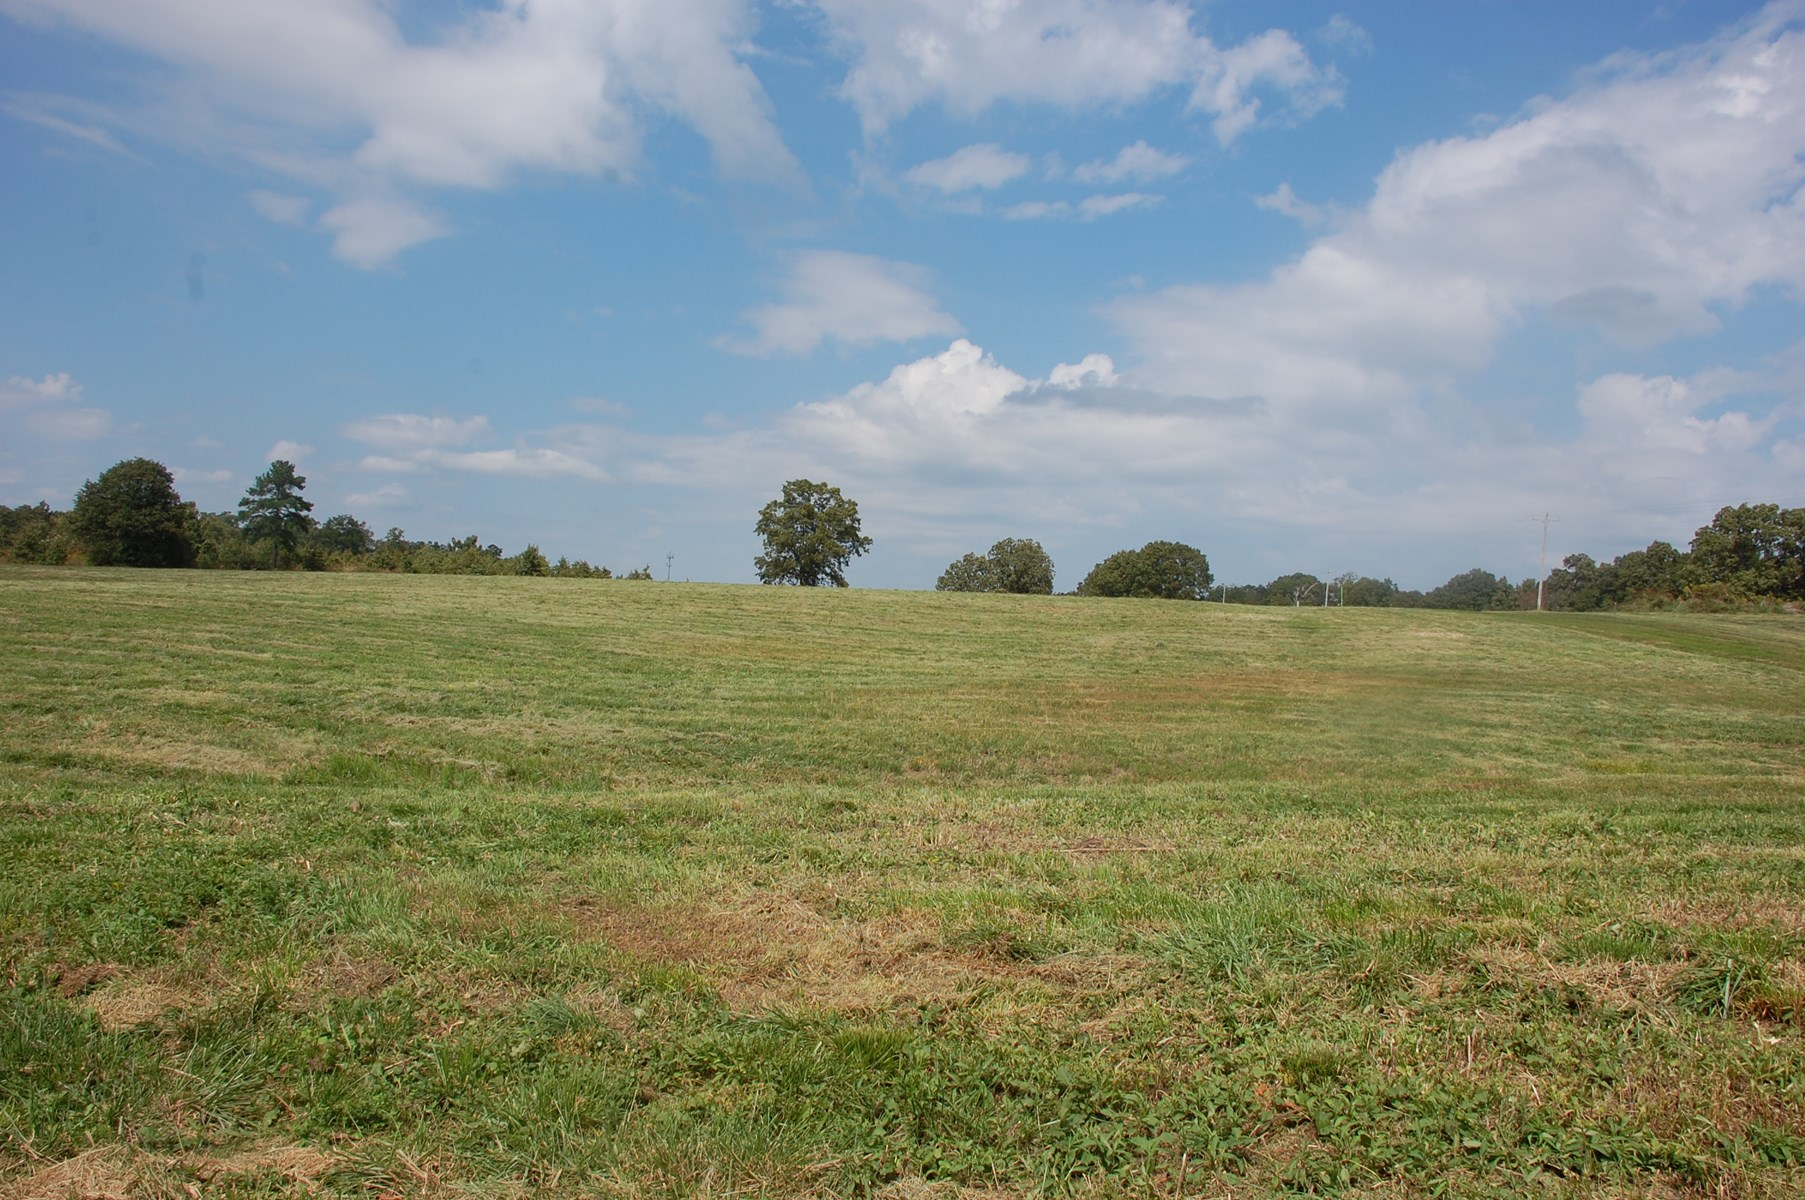 FOR SALE NEAR WEST PLAINS, MO - OAK ESTATES RESIDENTIAL LOTS